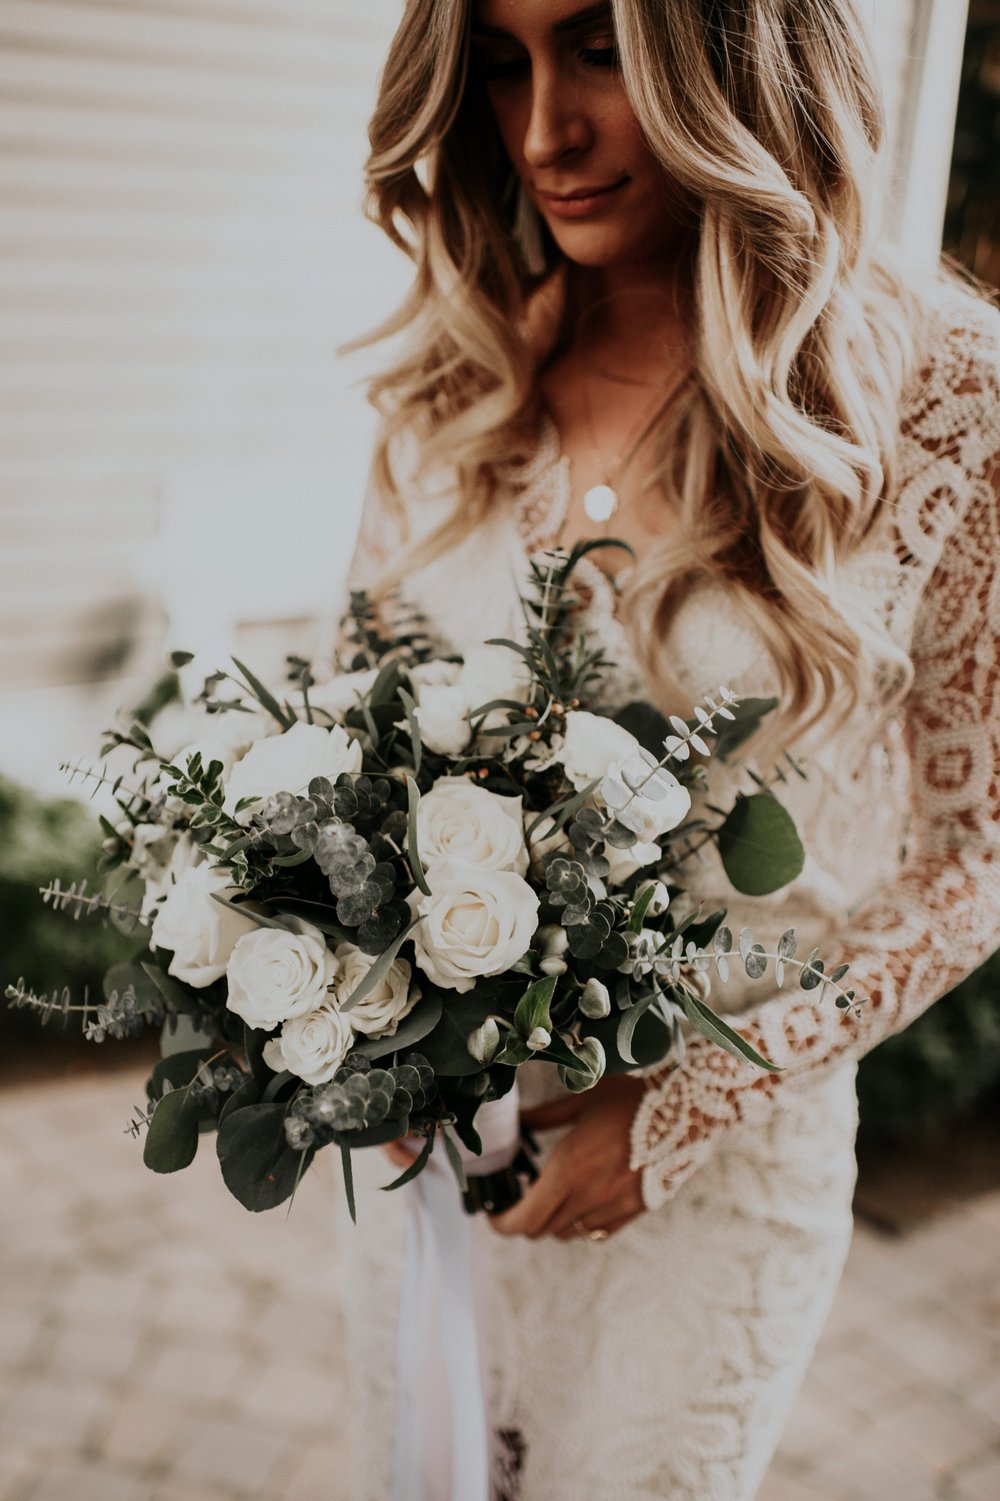 Wedding and Elopement Photography_Karly Ford Photo 42.jpg